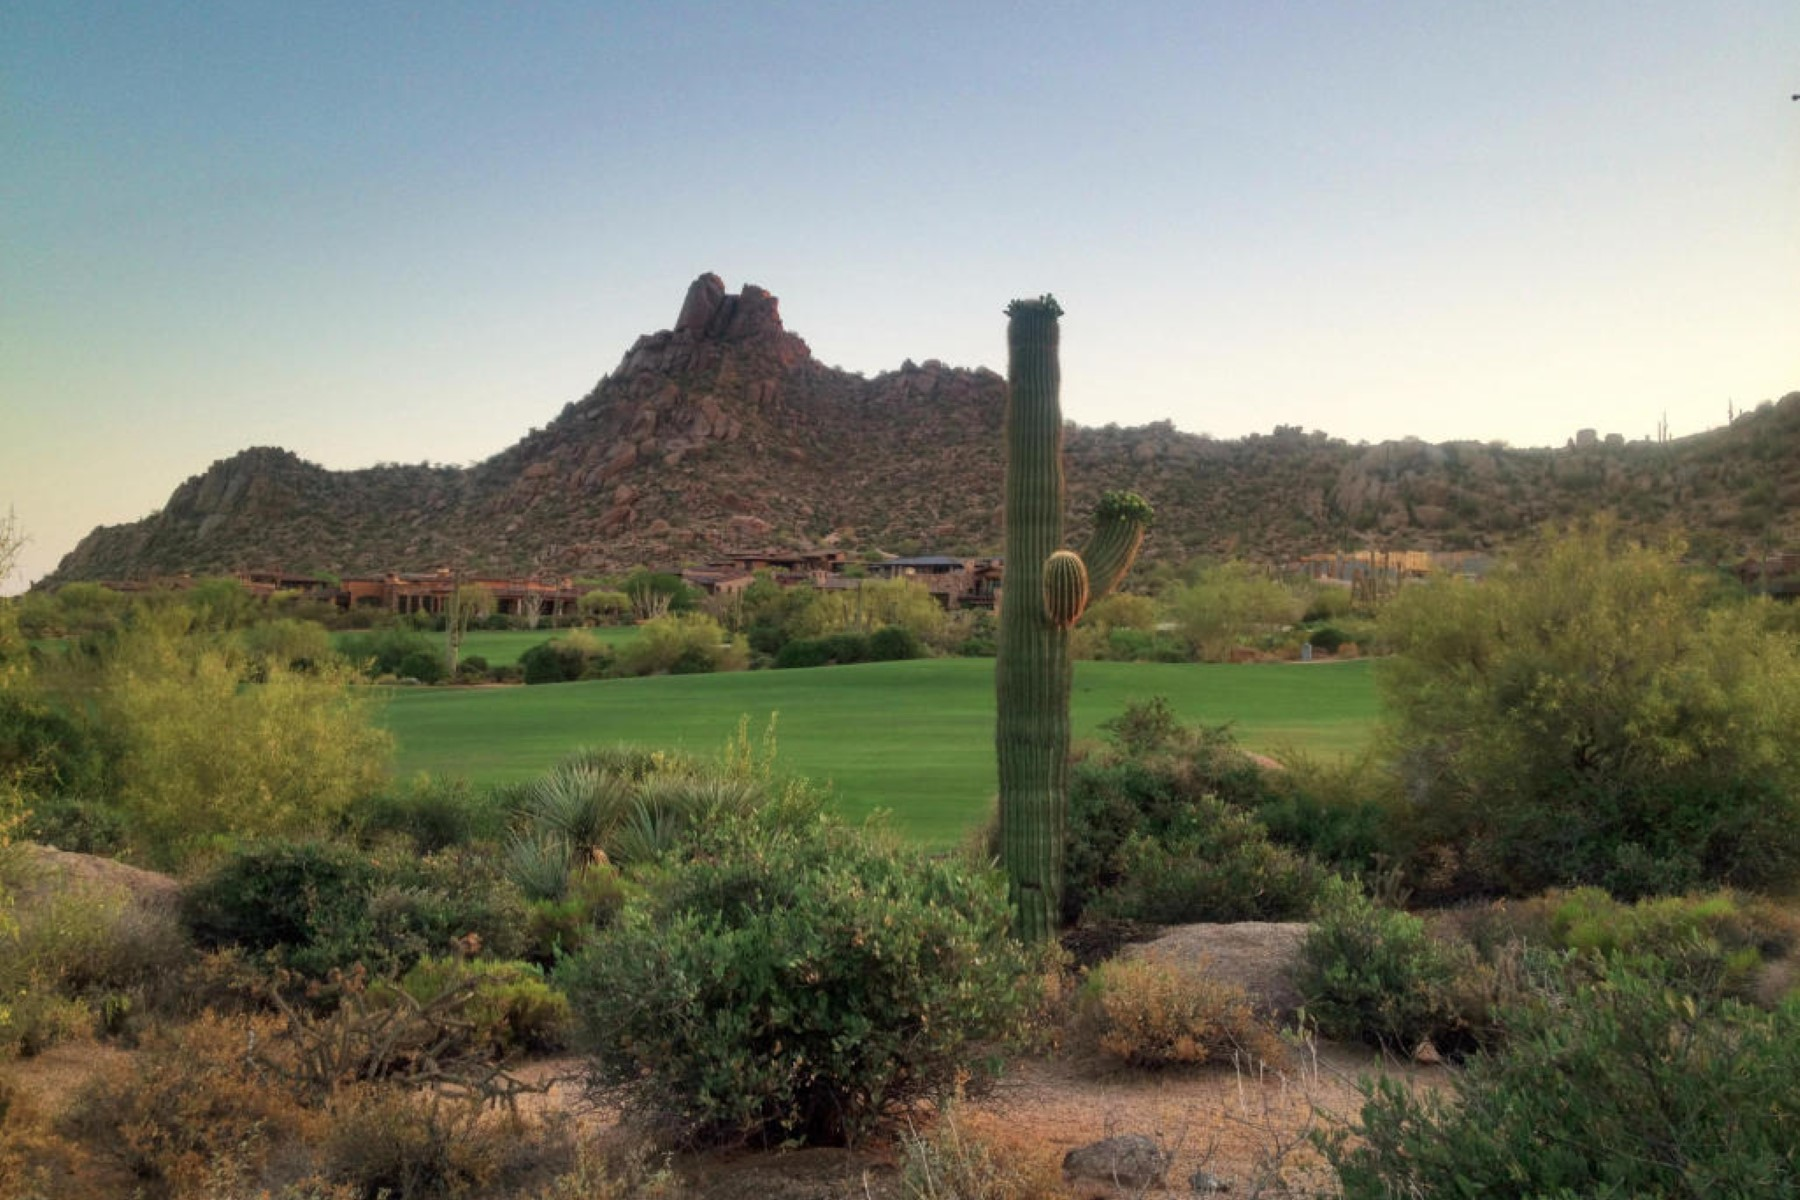 Terreno para Venda às Outstanding southwest-facing golf course homesite. 27230 N 103RD ST 189 Scottsdale, Arizona, 85262 Estados Unidos